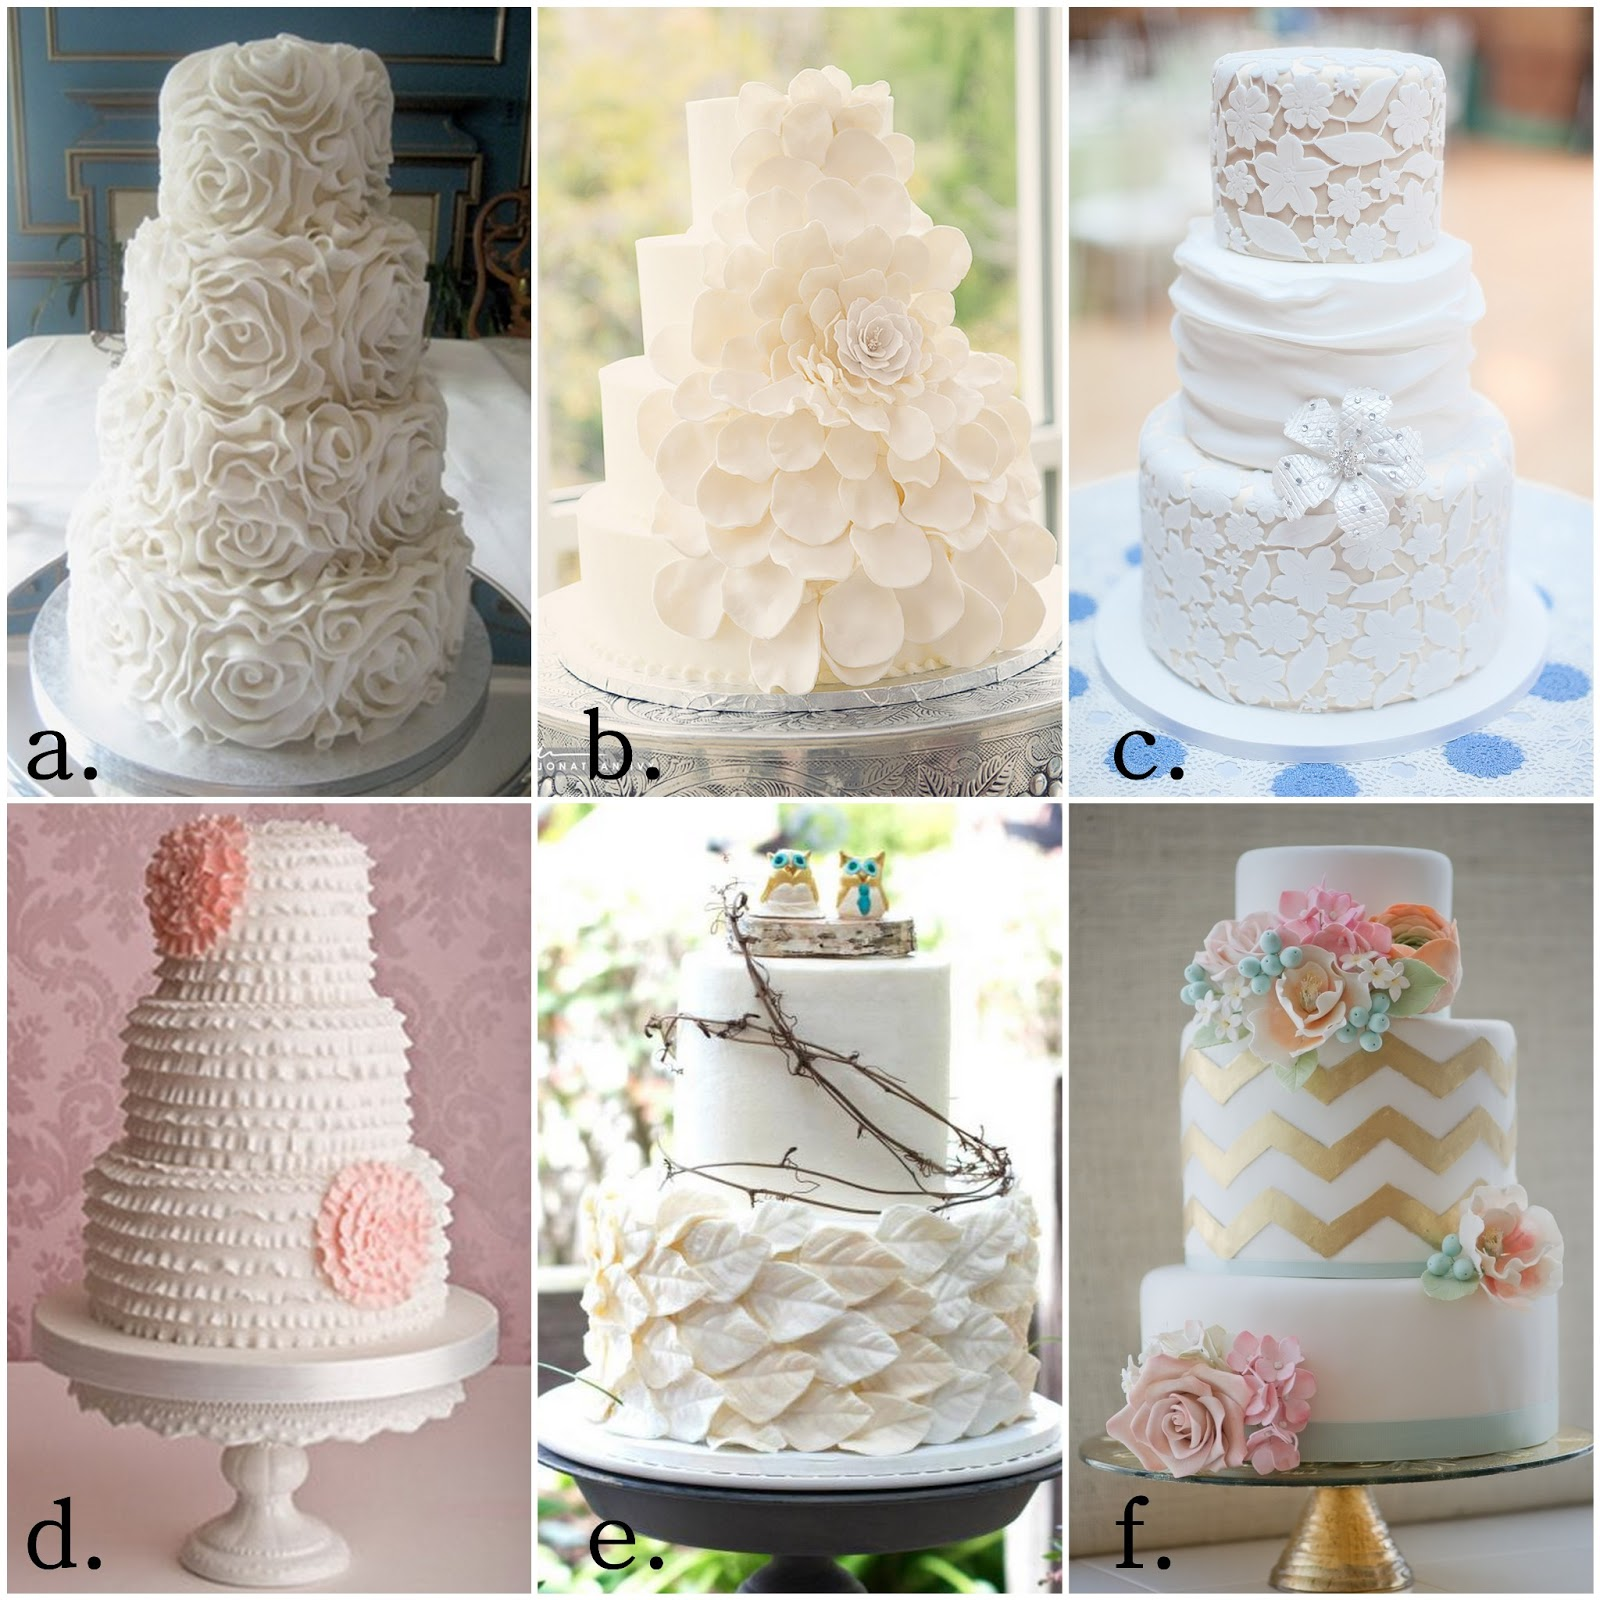 The Most Amazing Wedding Cakes Of 2013: Crowning Celebrations: Crowning Inspiration: 2013 CAKE TRENDS